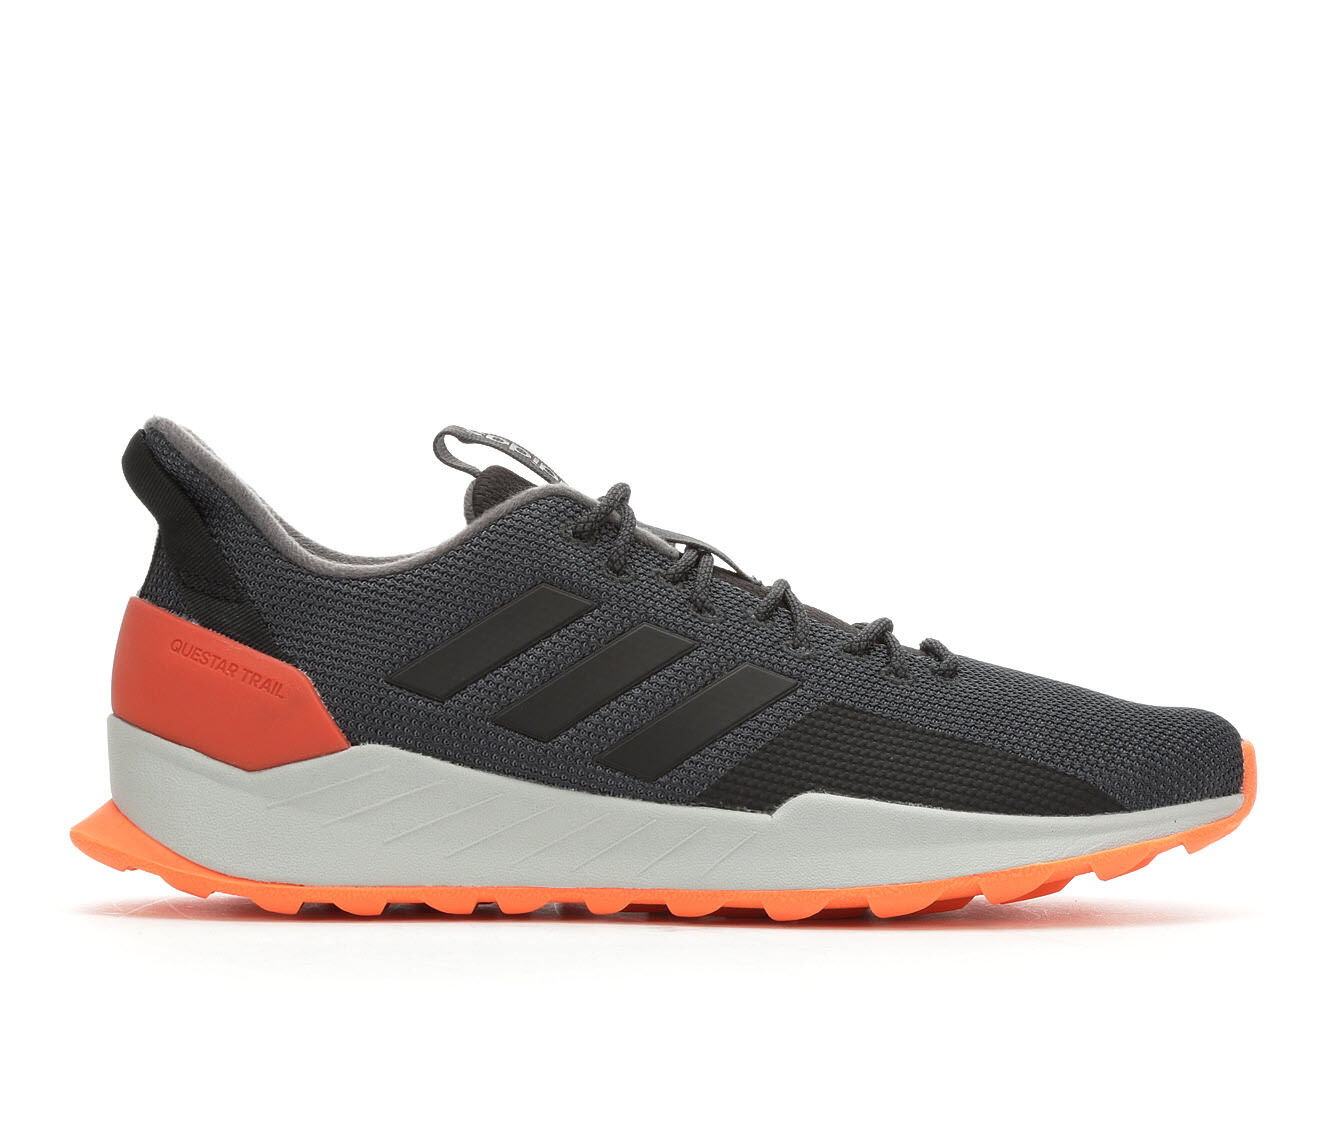 buy authentic new Men's Adidas Questar Trail Running Shoes Gry/Blk/Org